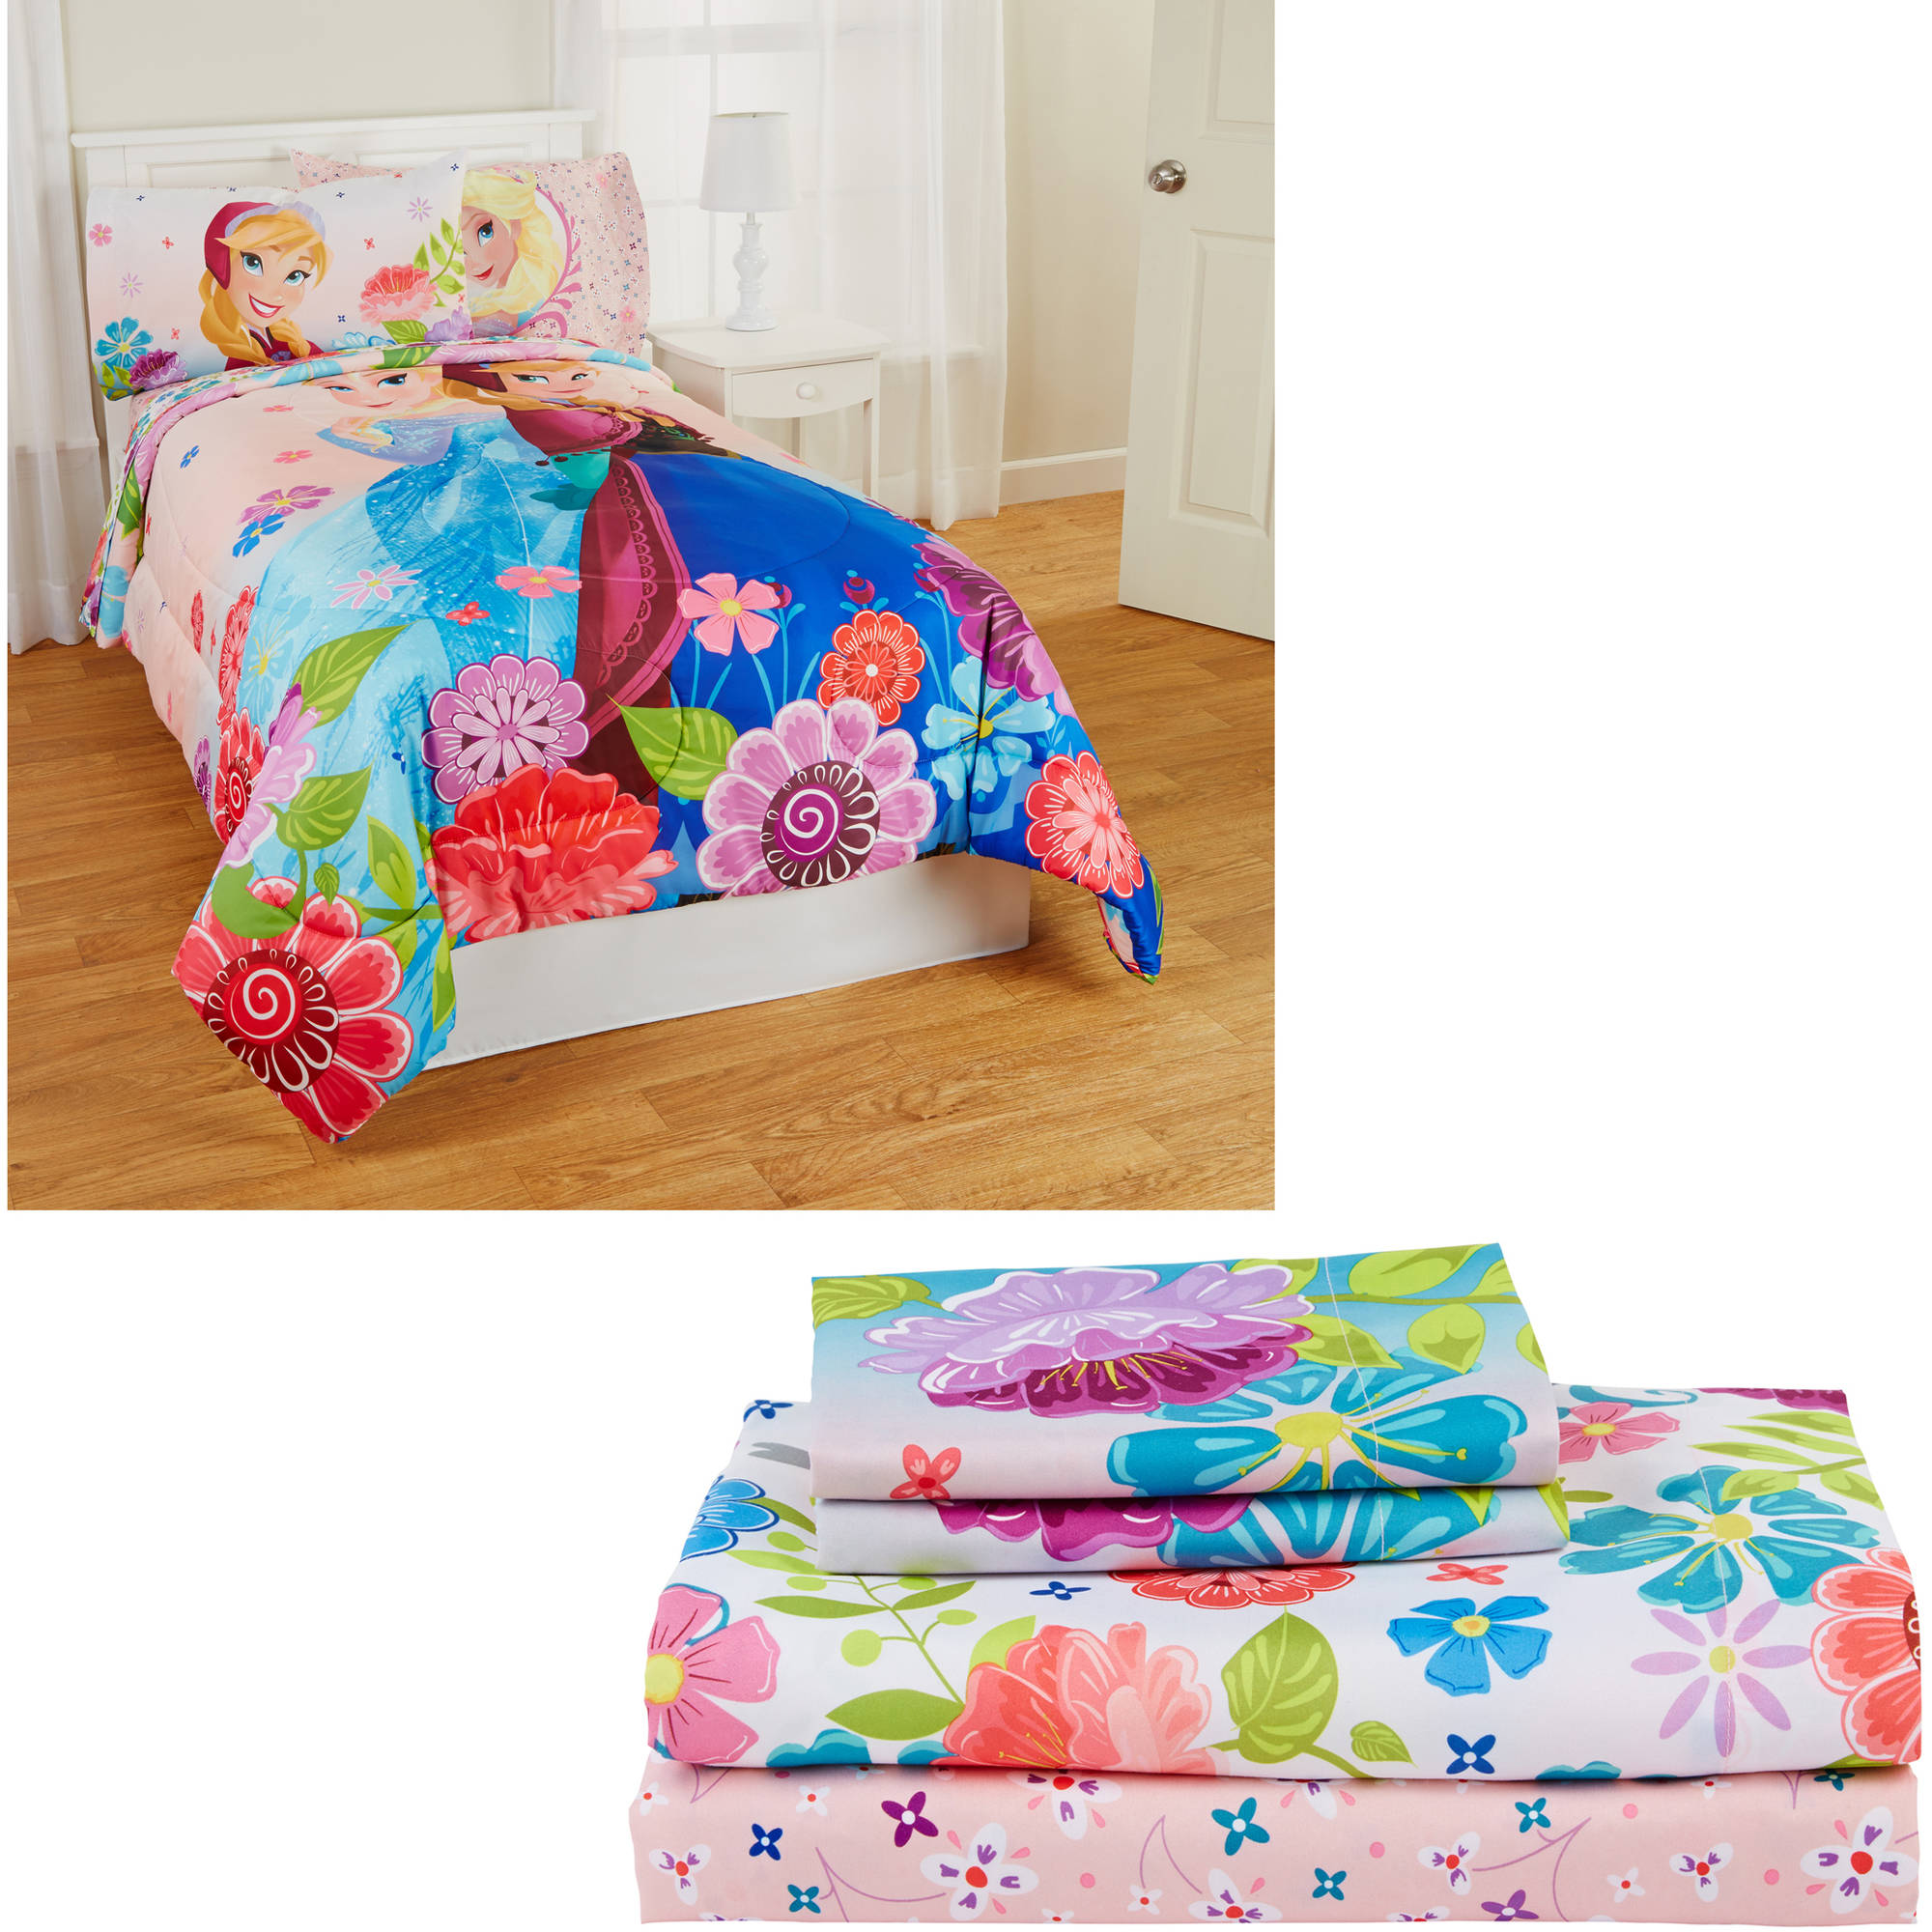 Disney's Frozen Reversible Full Bed in a Bag Bedding Set (comes with Full Sheet Set and Twin/Full Comforter)